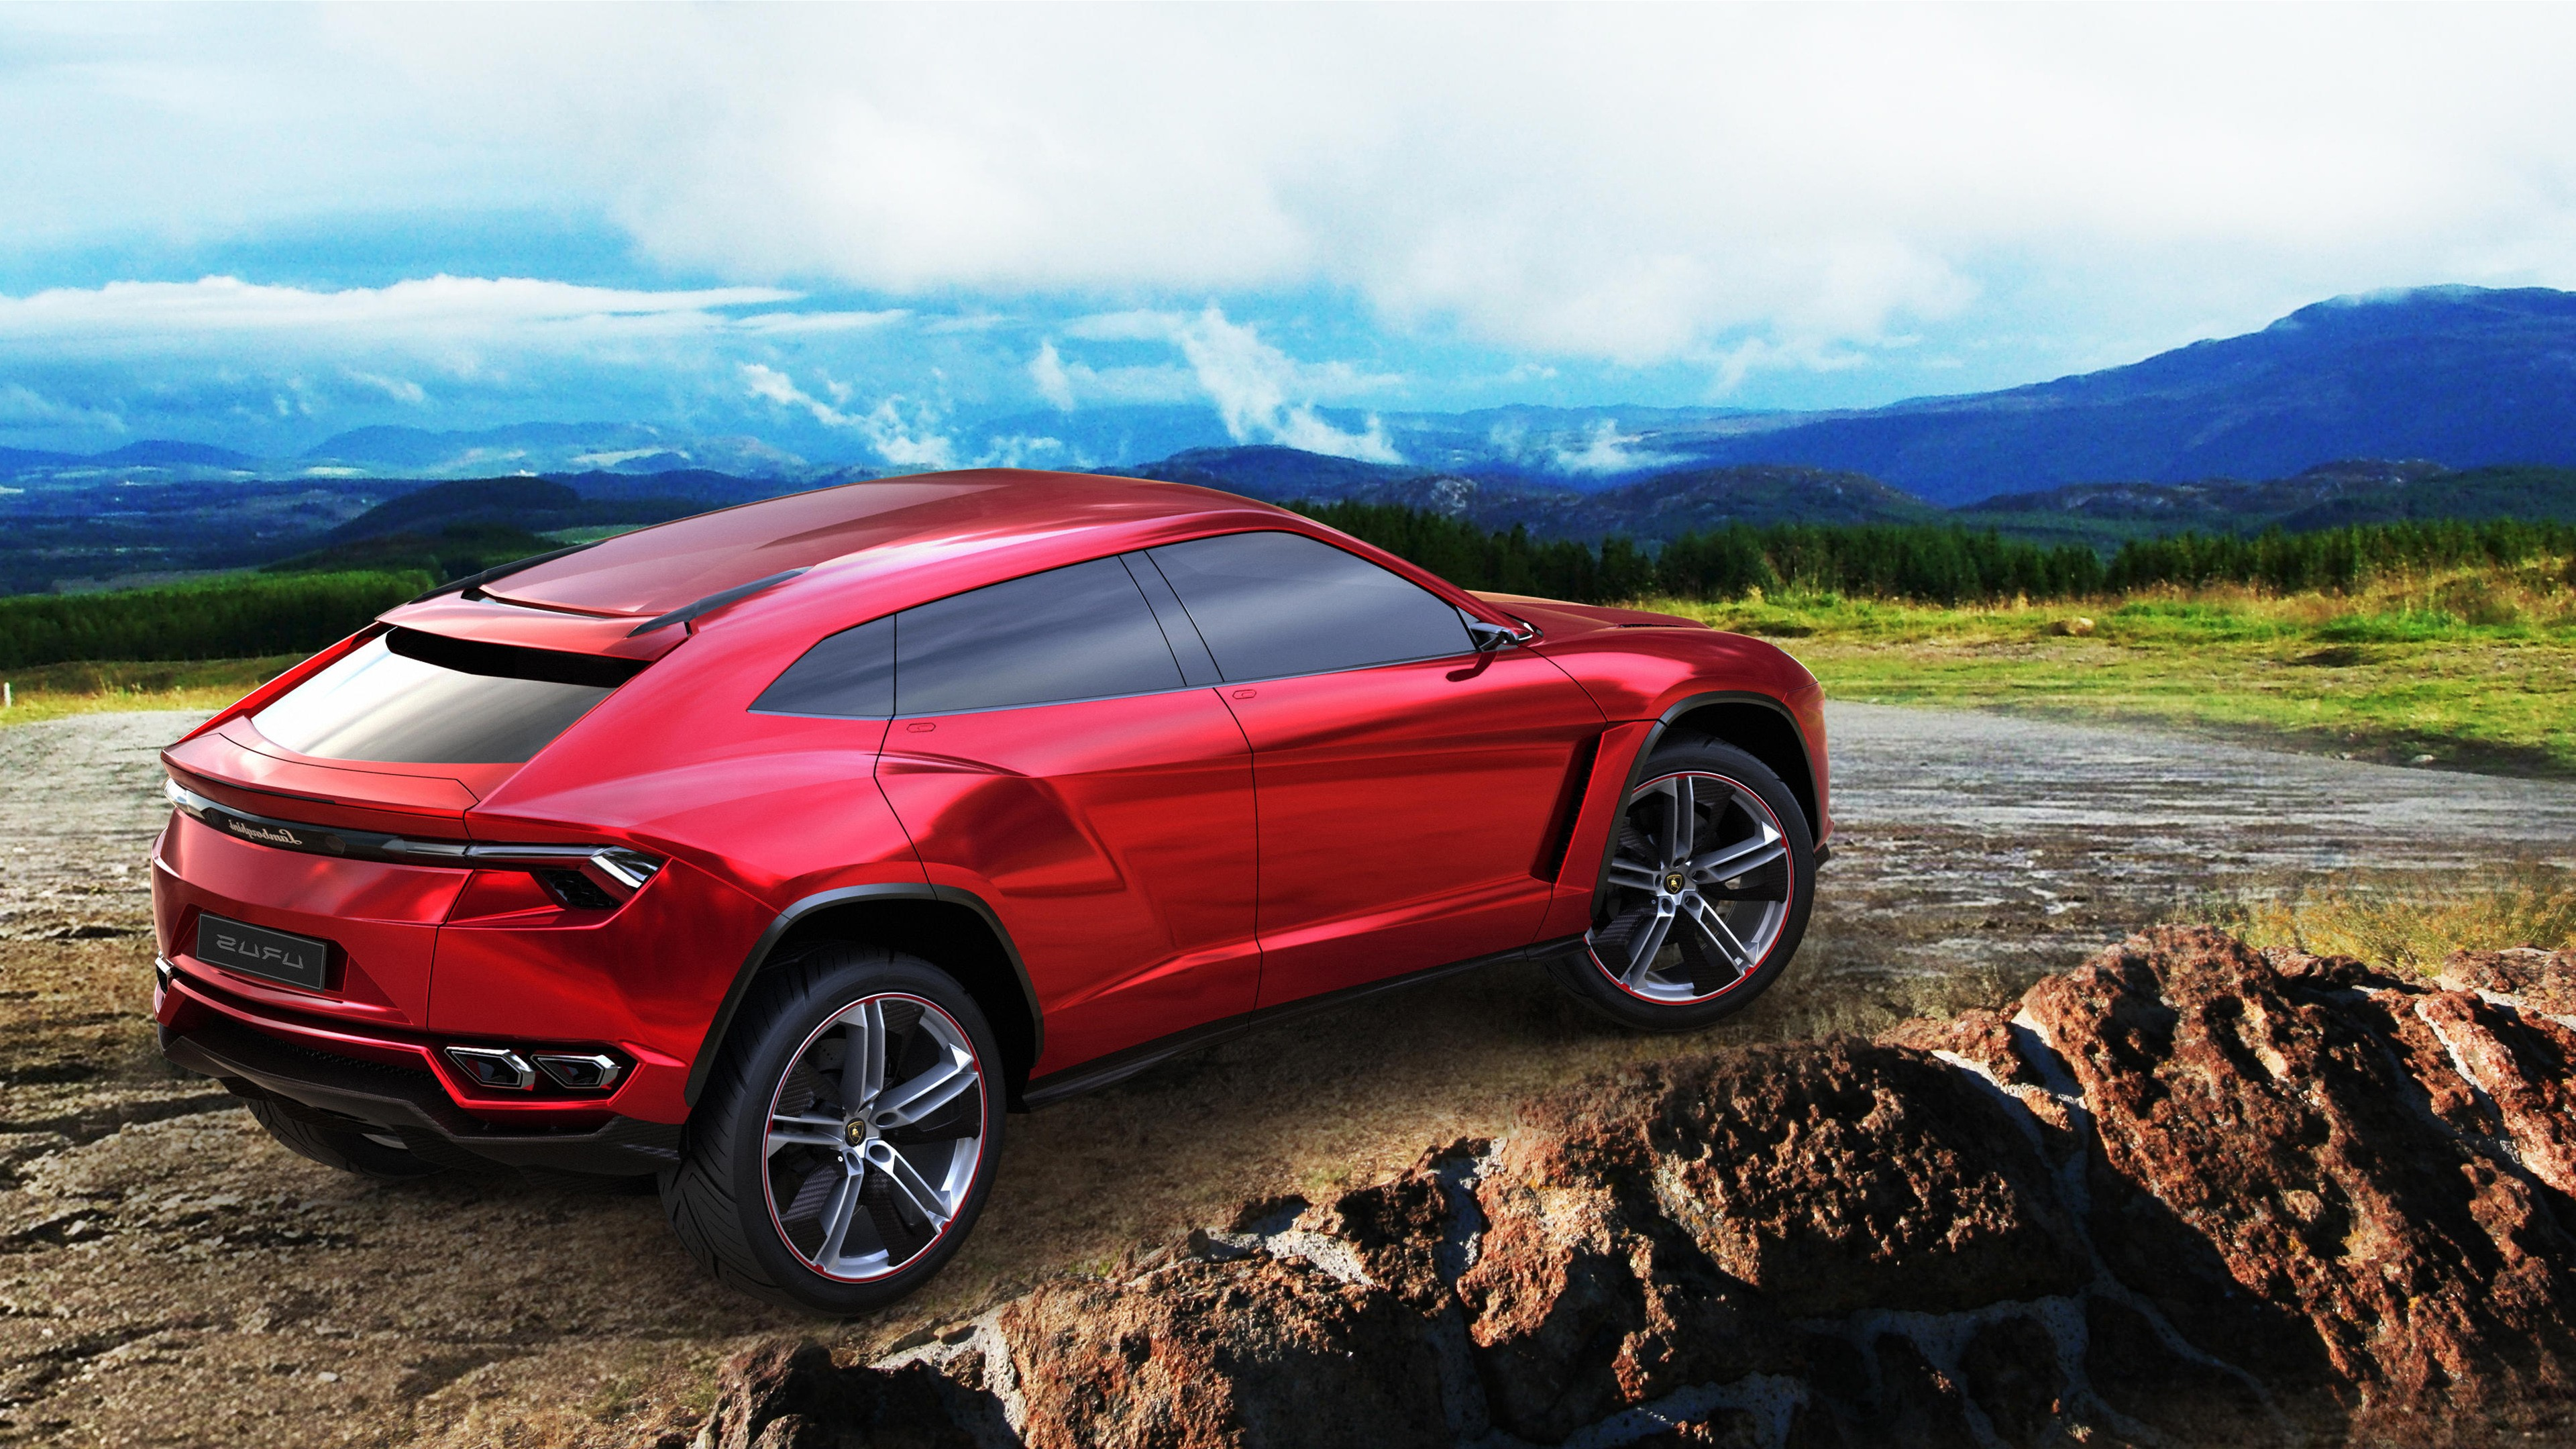 Lamborghini Urus Concept, HD Cars, 4k Wallpapers, Images, Backgrounds, Photos and Pictures